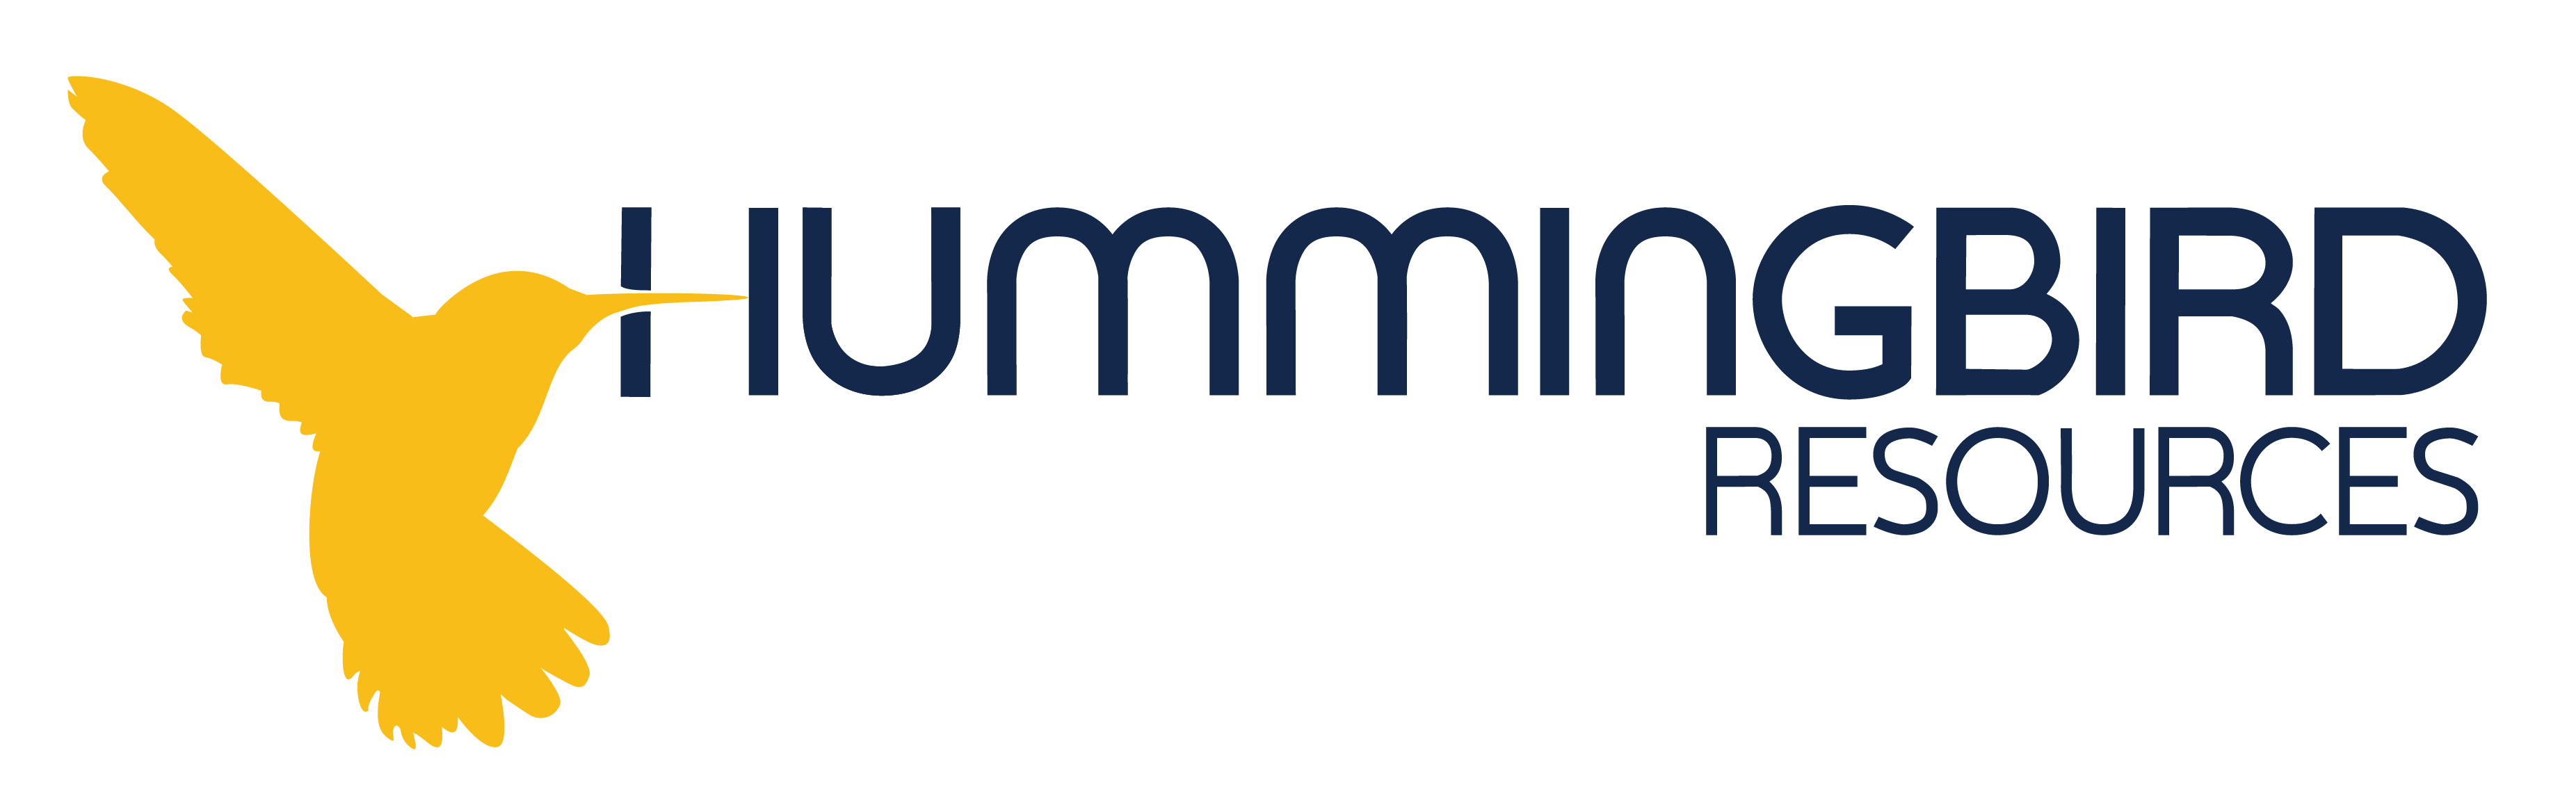 HUMMINGBIRD RESOURCES PLC Logo